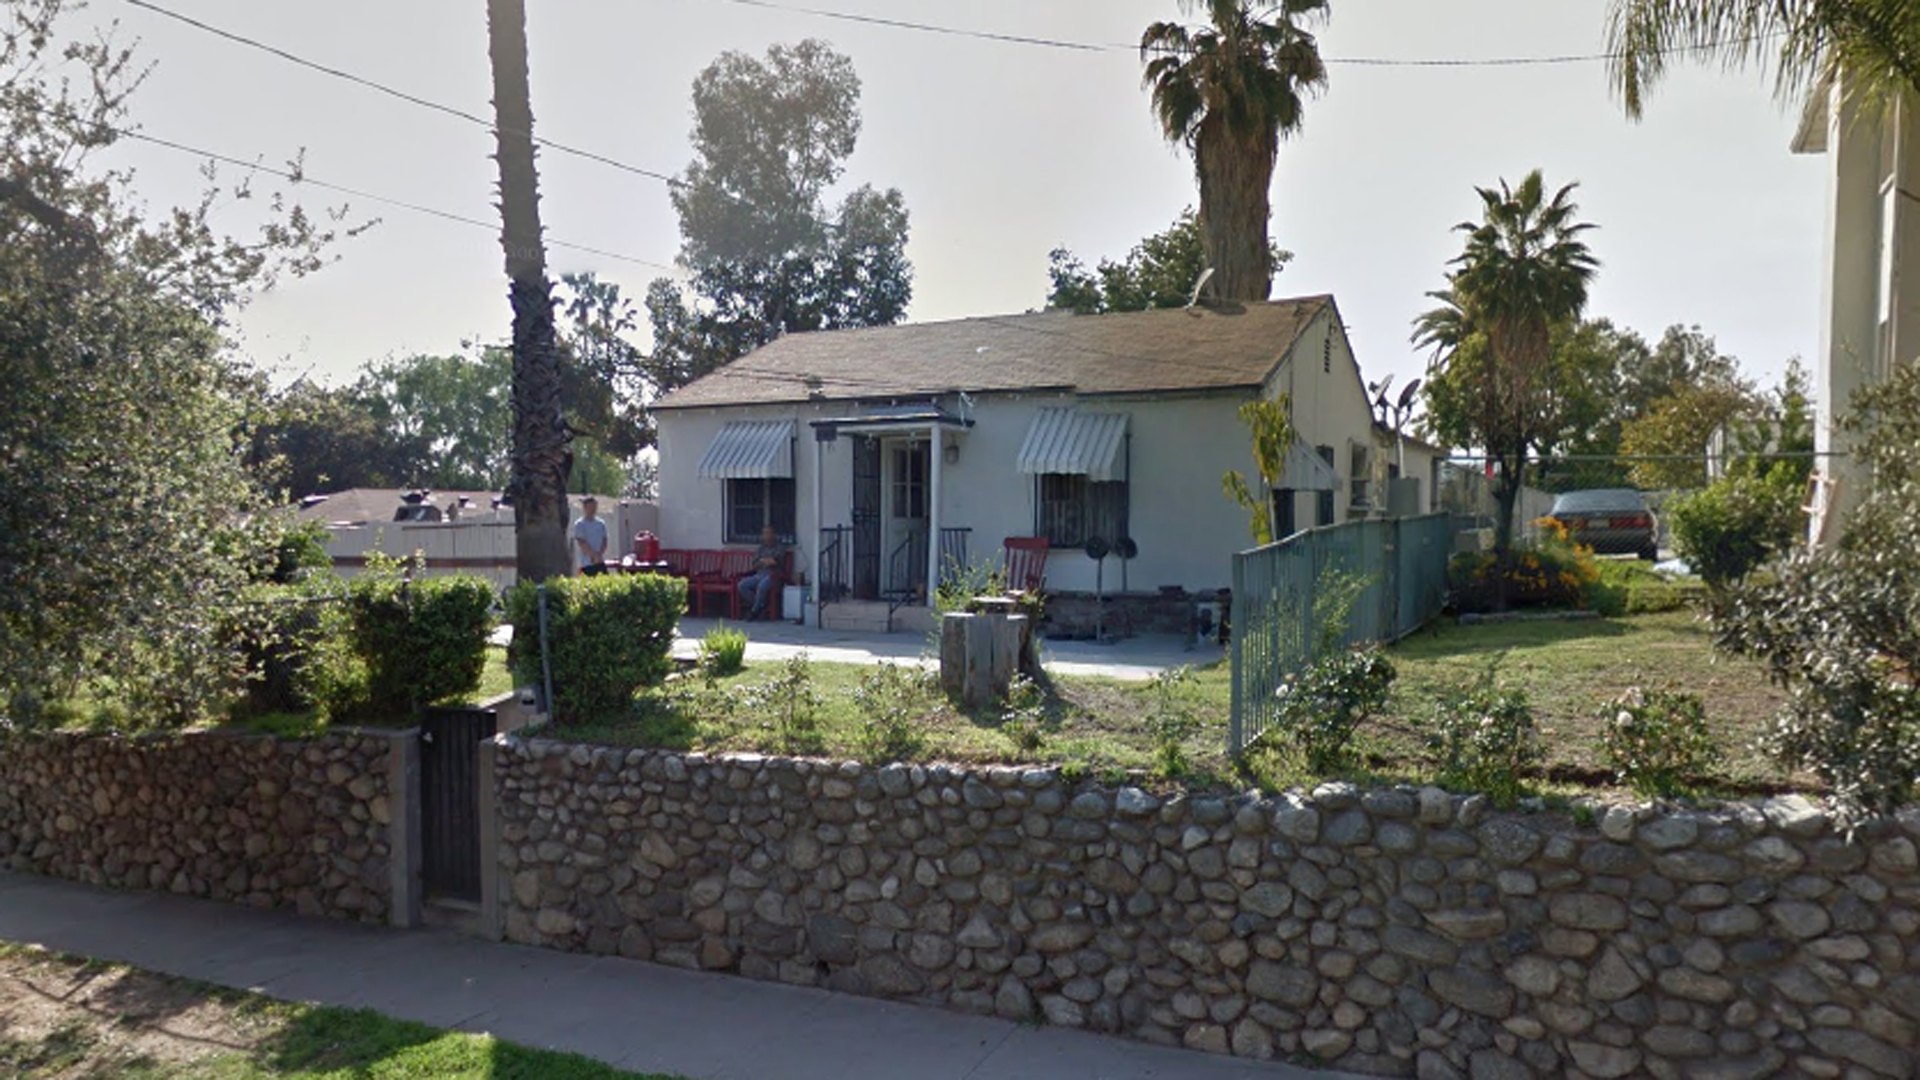 1361 N. Garfield Ave. in Pasadena, as pictured in a Google Street View image in Feb. of 2015.